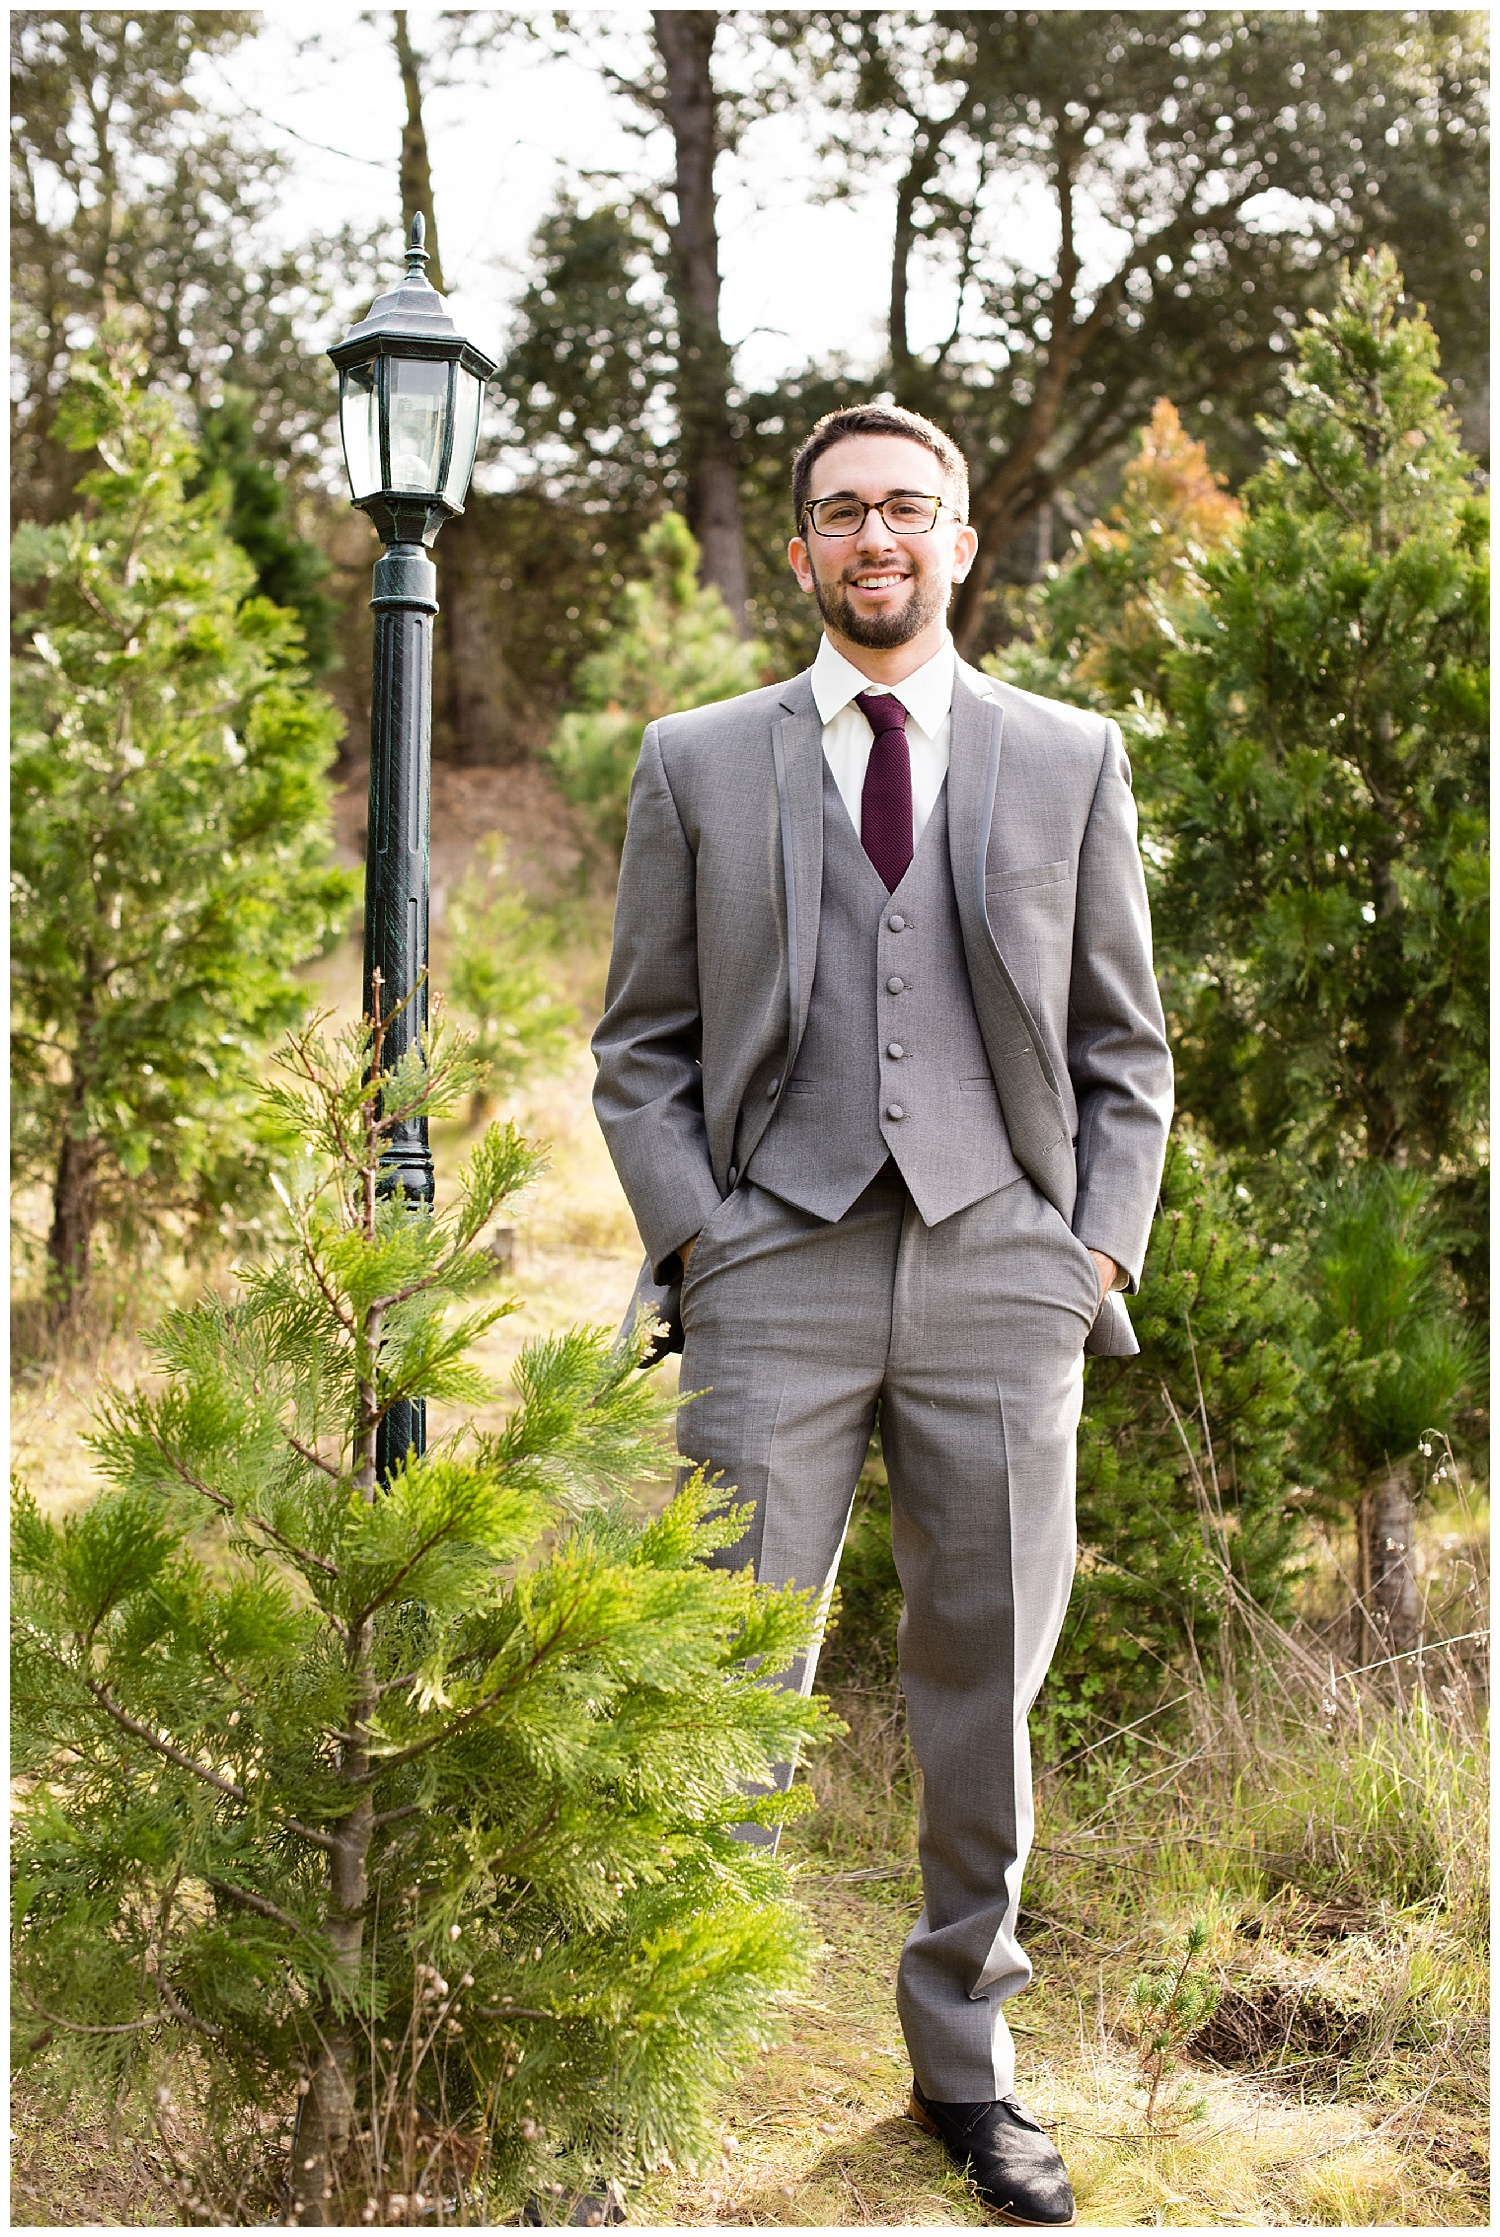 christmas-tree-farm-groom-suit.jpg